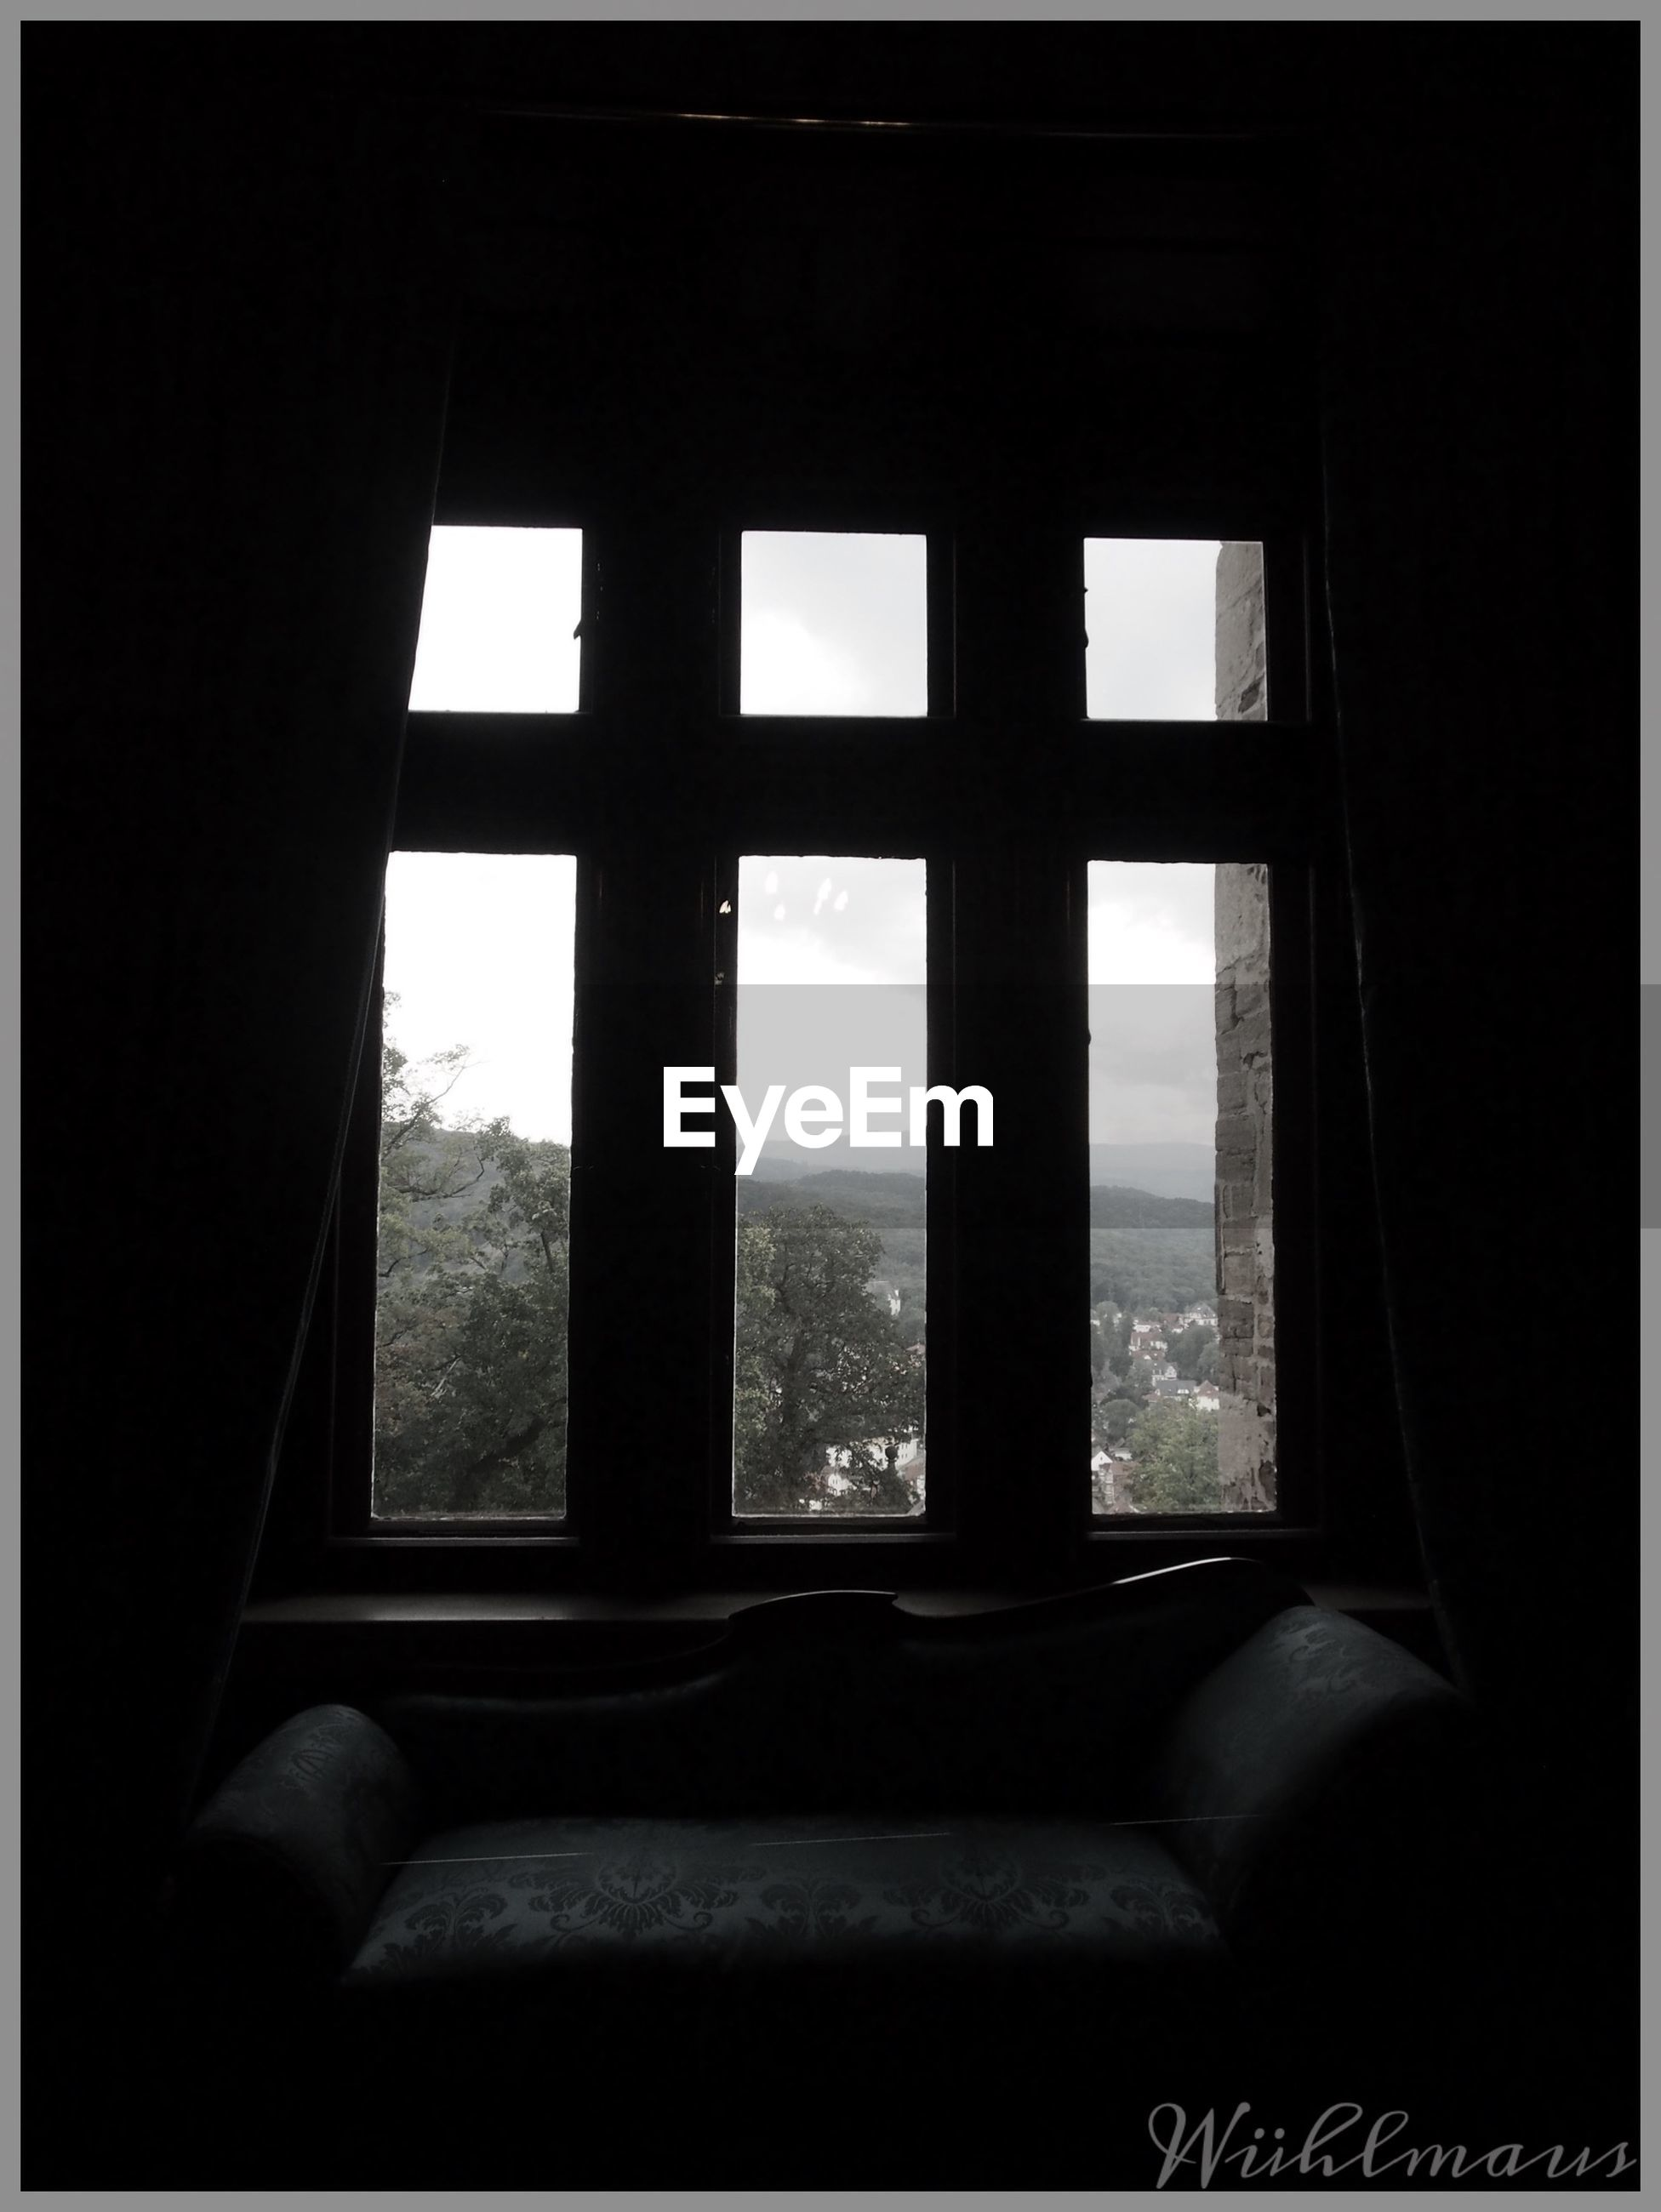 window, indoors, glass - material, transparent, built structure, home interior, architecture, open, sky, sunlight, day, house, looking through window, no people, window frame, curtain, dark, glass, window sill, abandoned